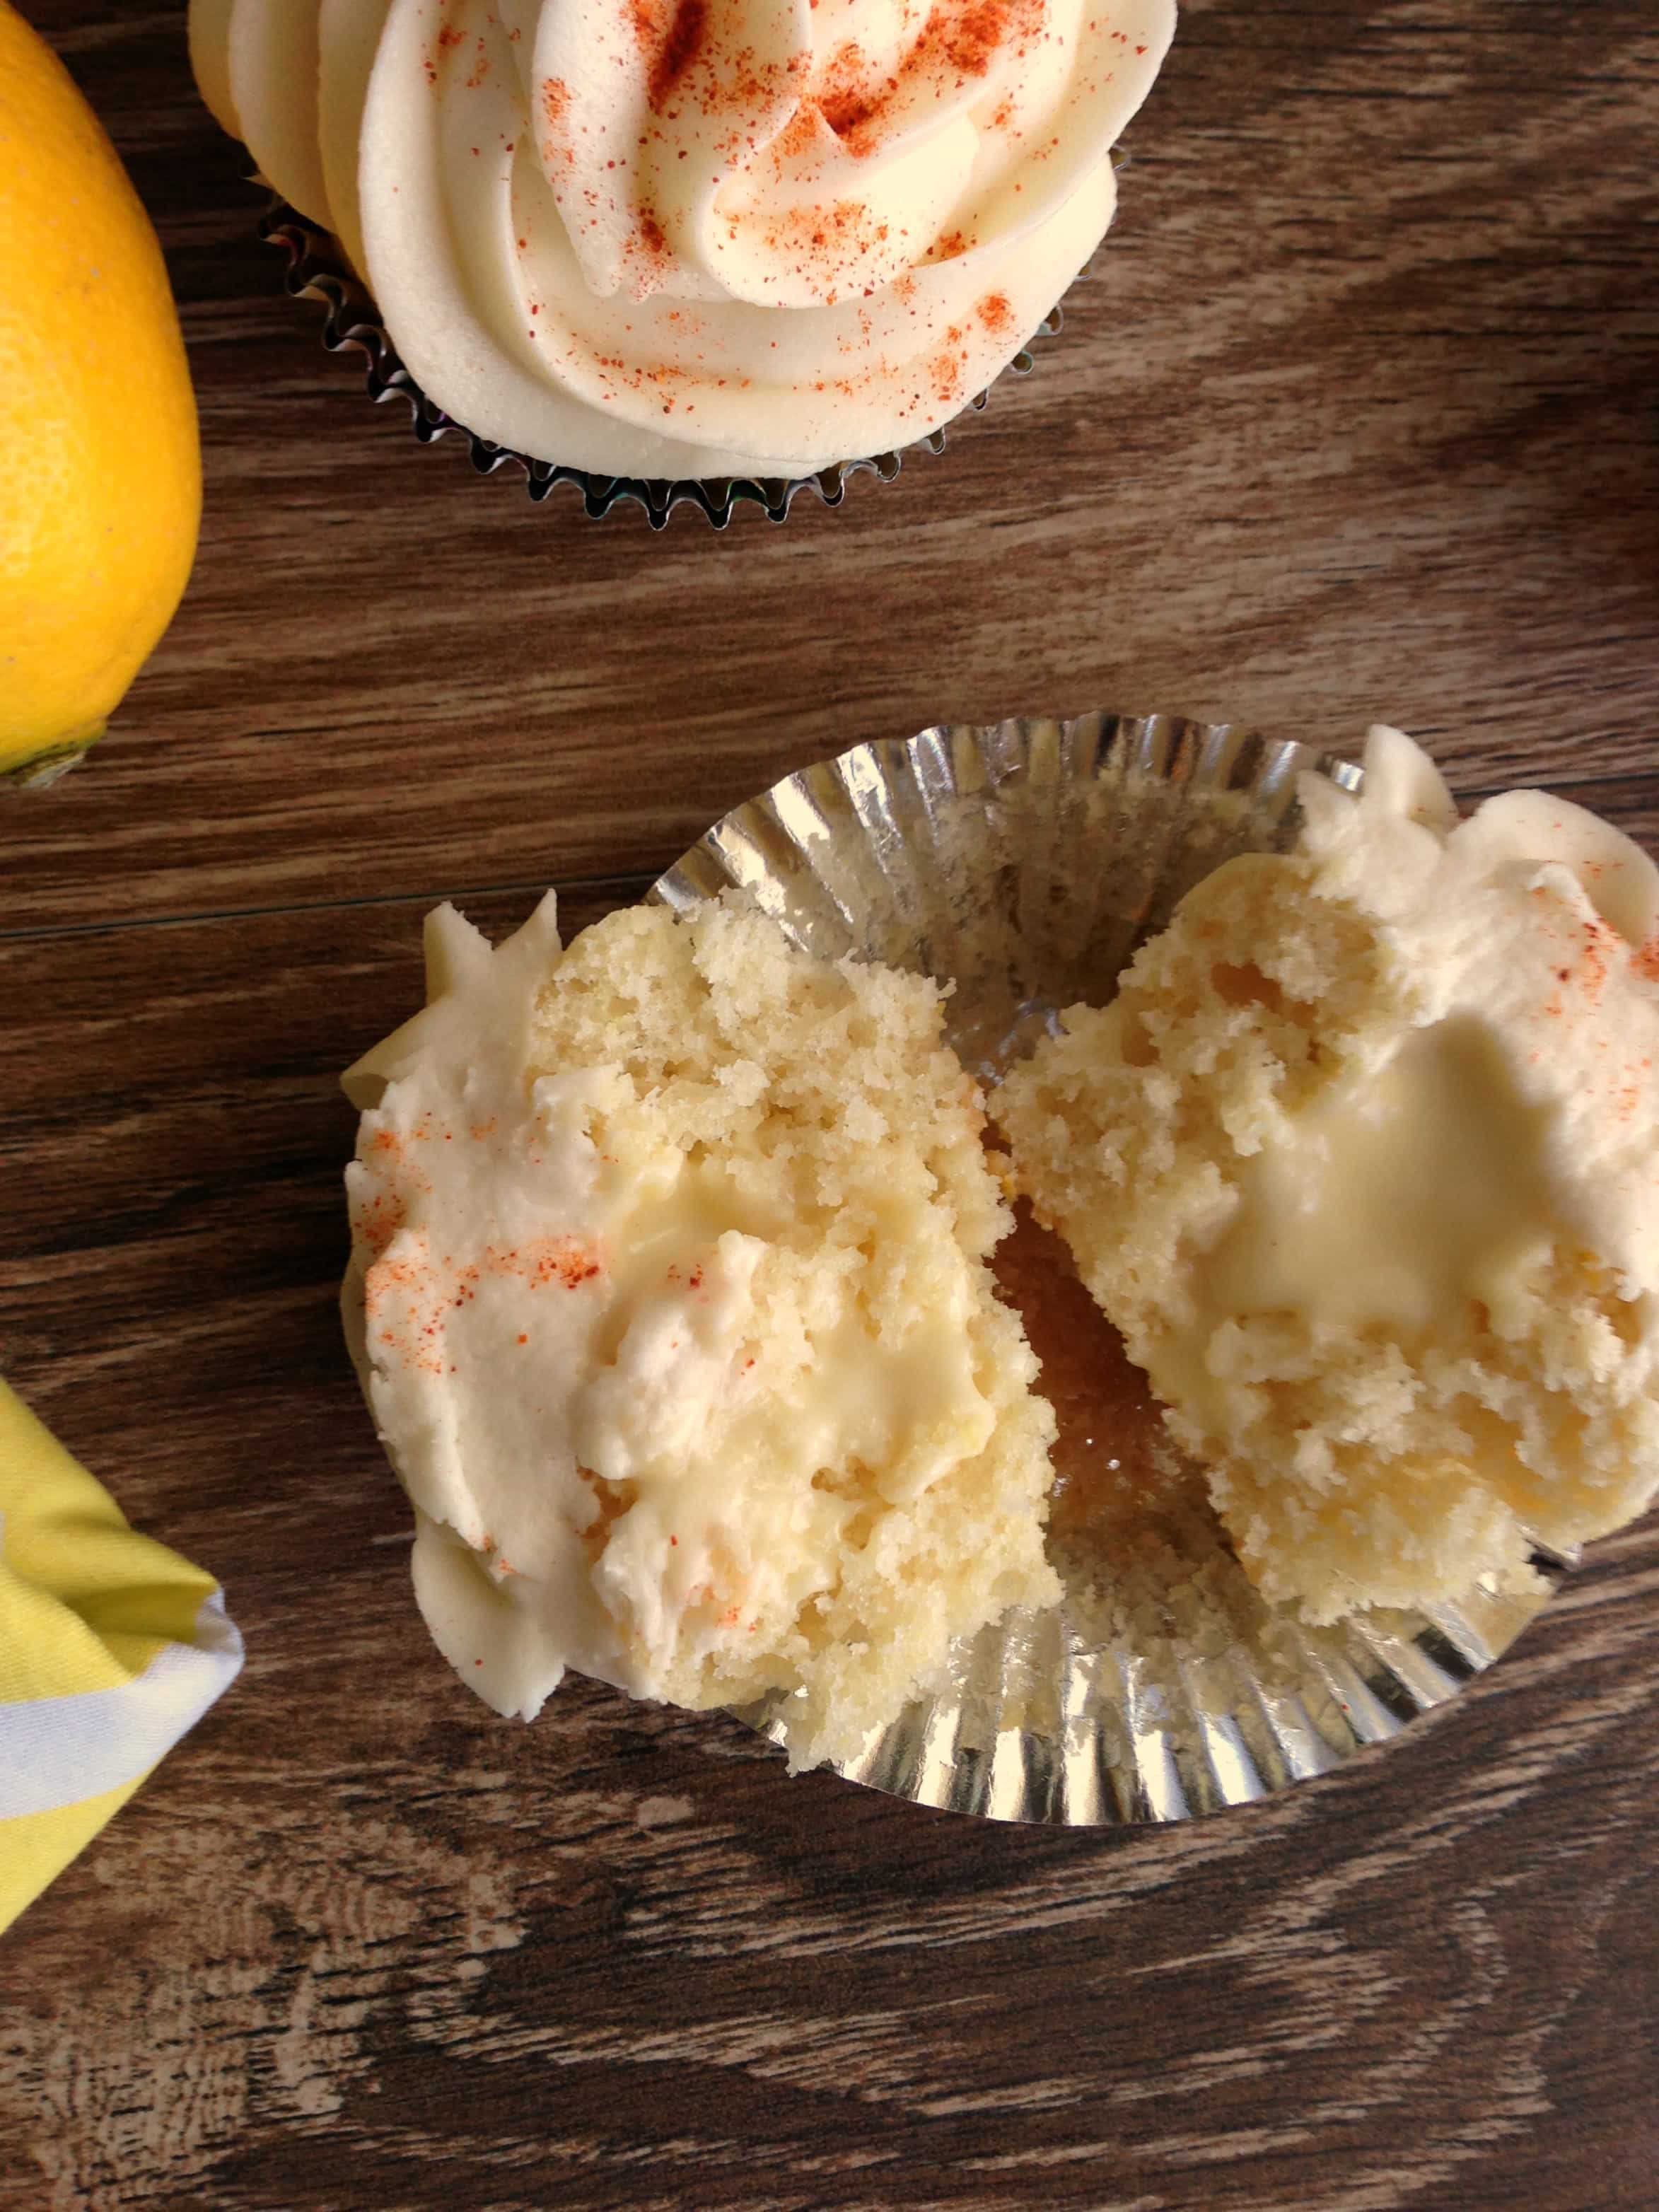 Lemon cupcakes filled with a sweet Meyer Lemon Curd filling, Maple Cream Cheese frosting, sprinkled with a dash of Cayenne Pepper. #mastercleanse [House of Yumm]